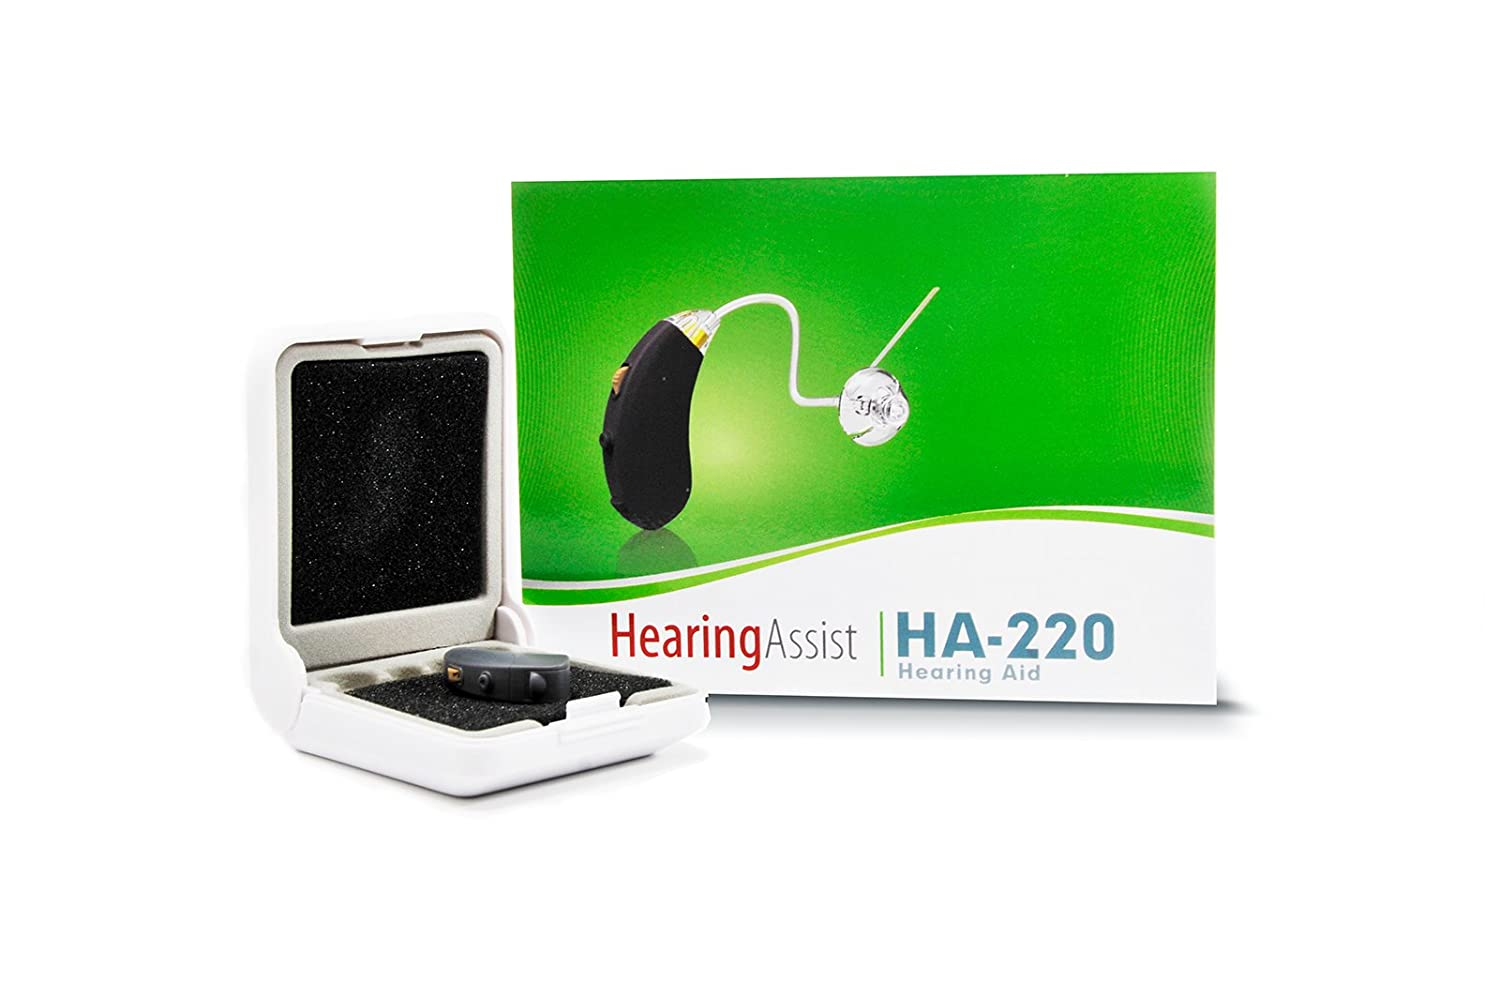 Hearing Assist Premium Digital Aid Amplifier Living Aids Amplifiers Accessories Small And Discreet Psap Up To 46db Amplification Ha 220 Health Personal Care